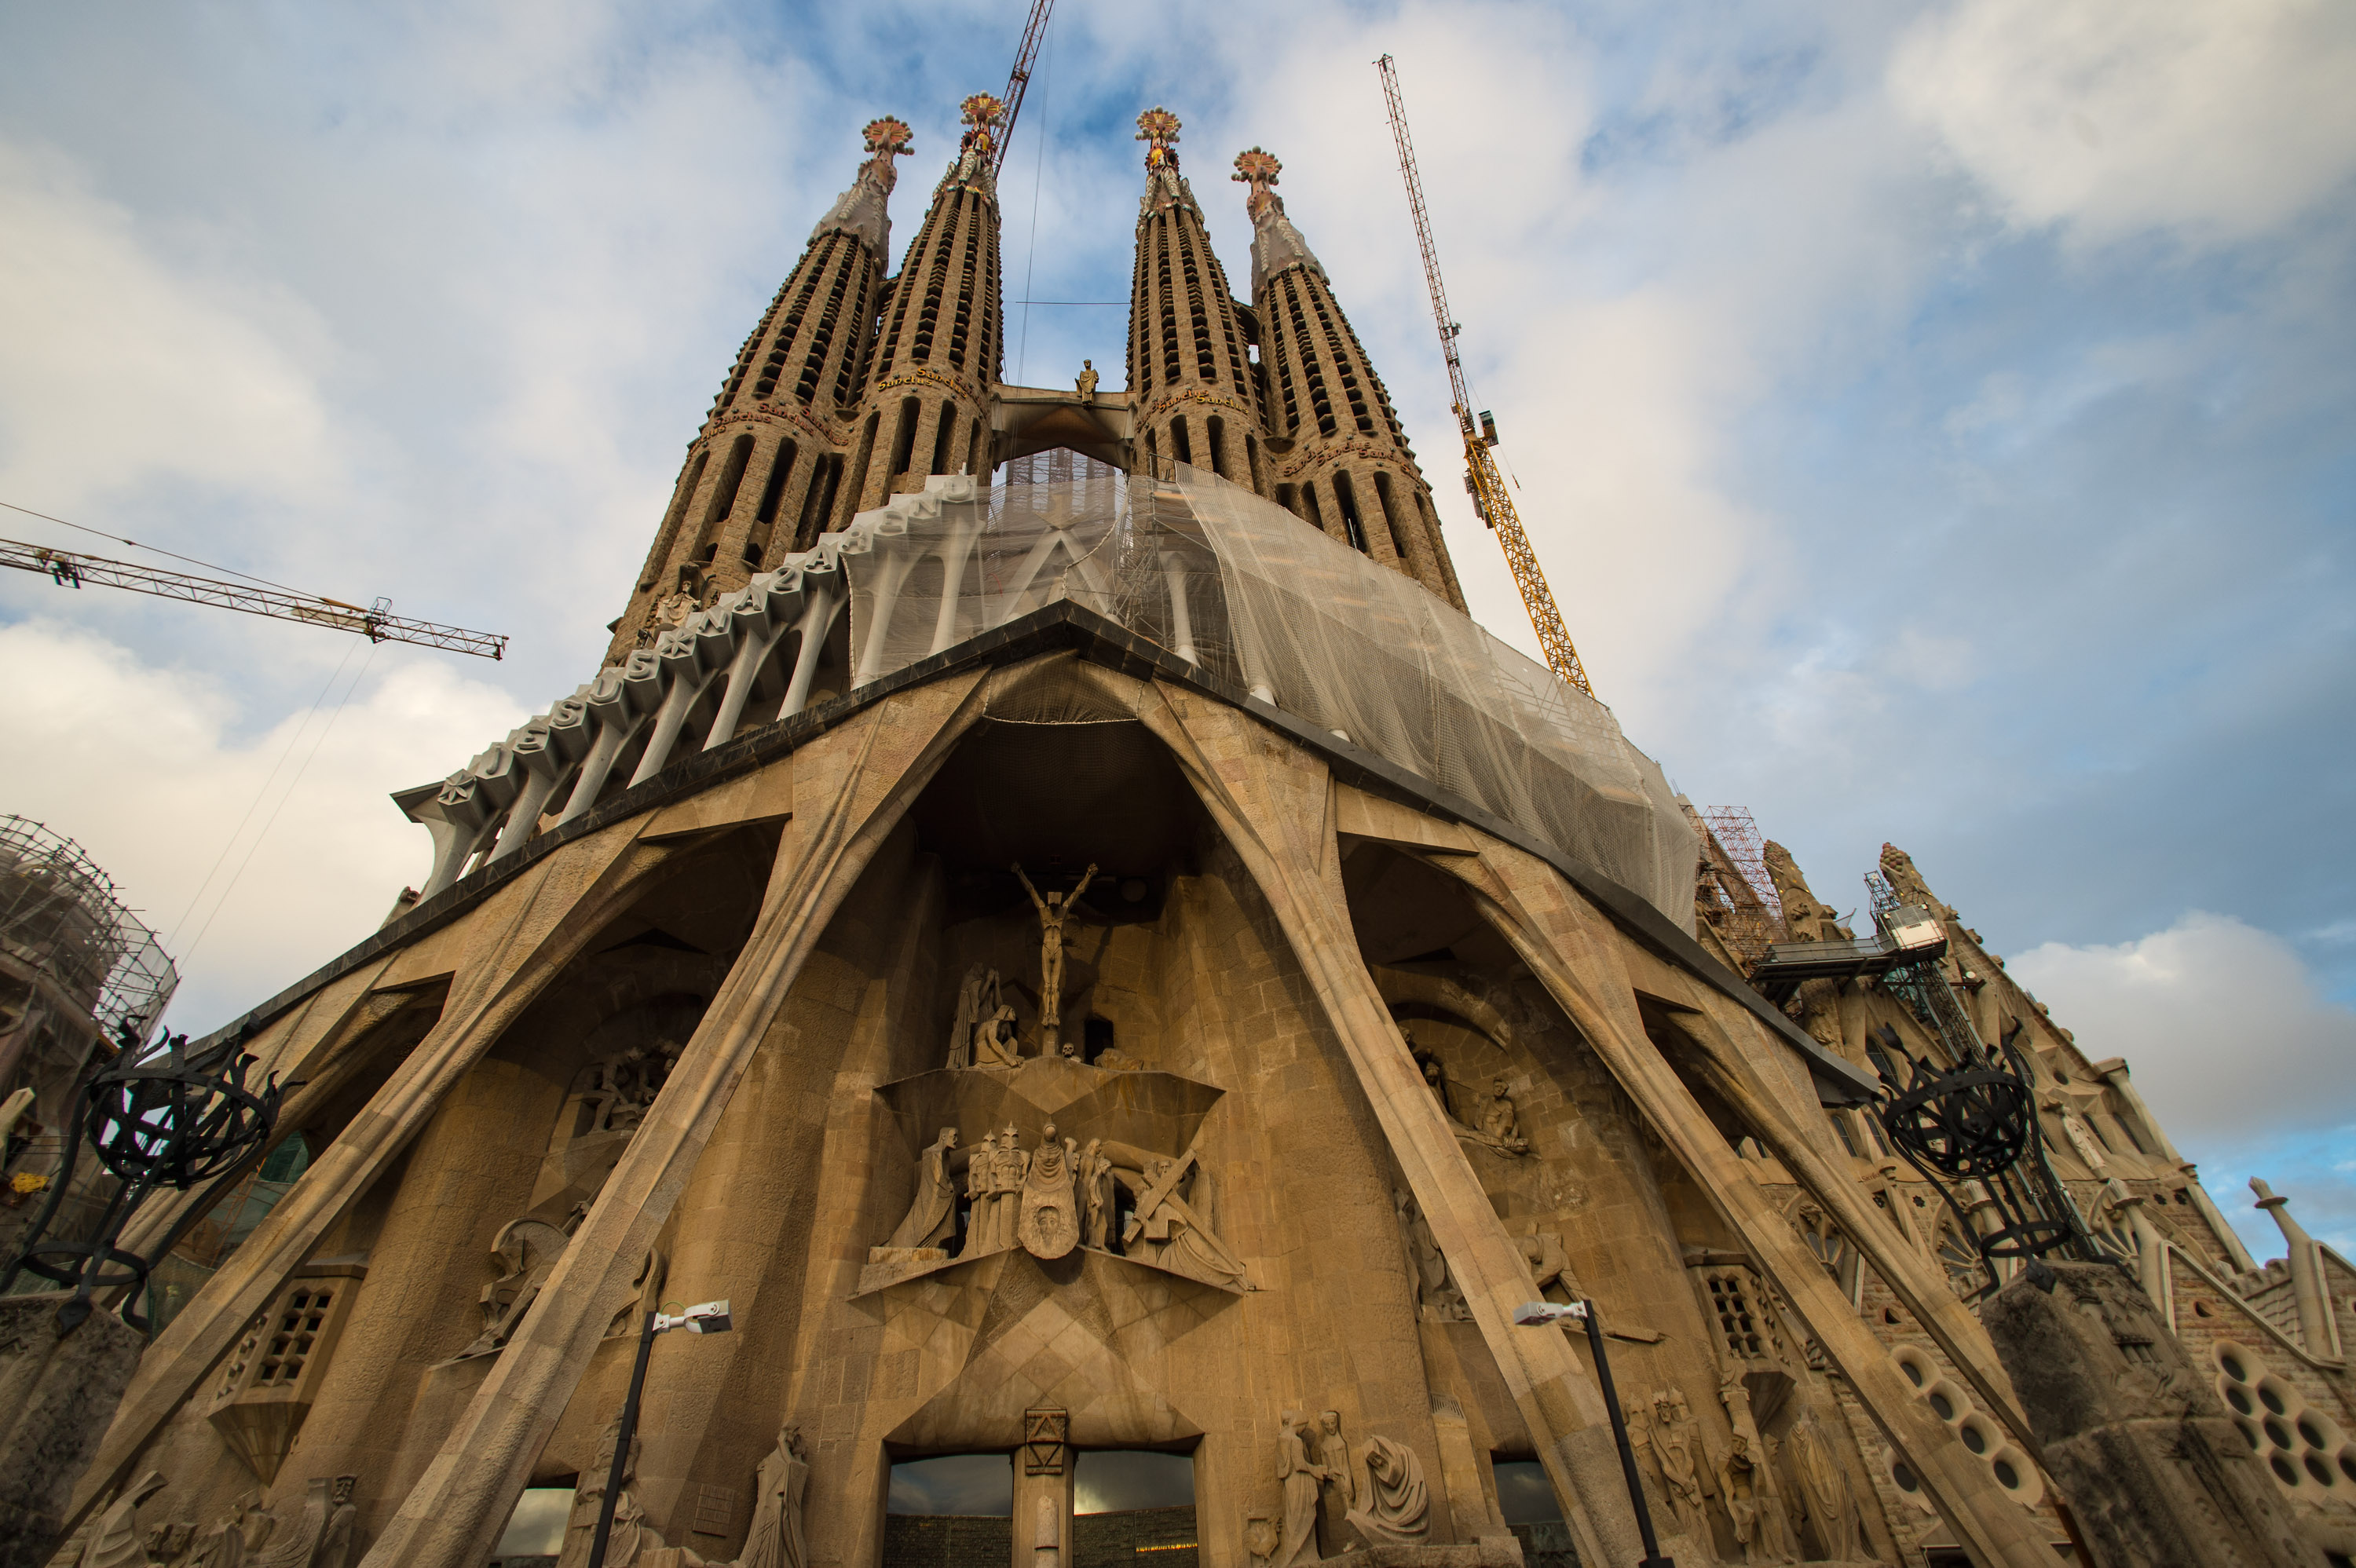 Architectural Marvels facts